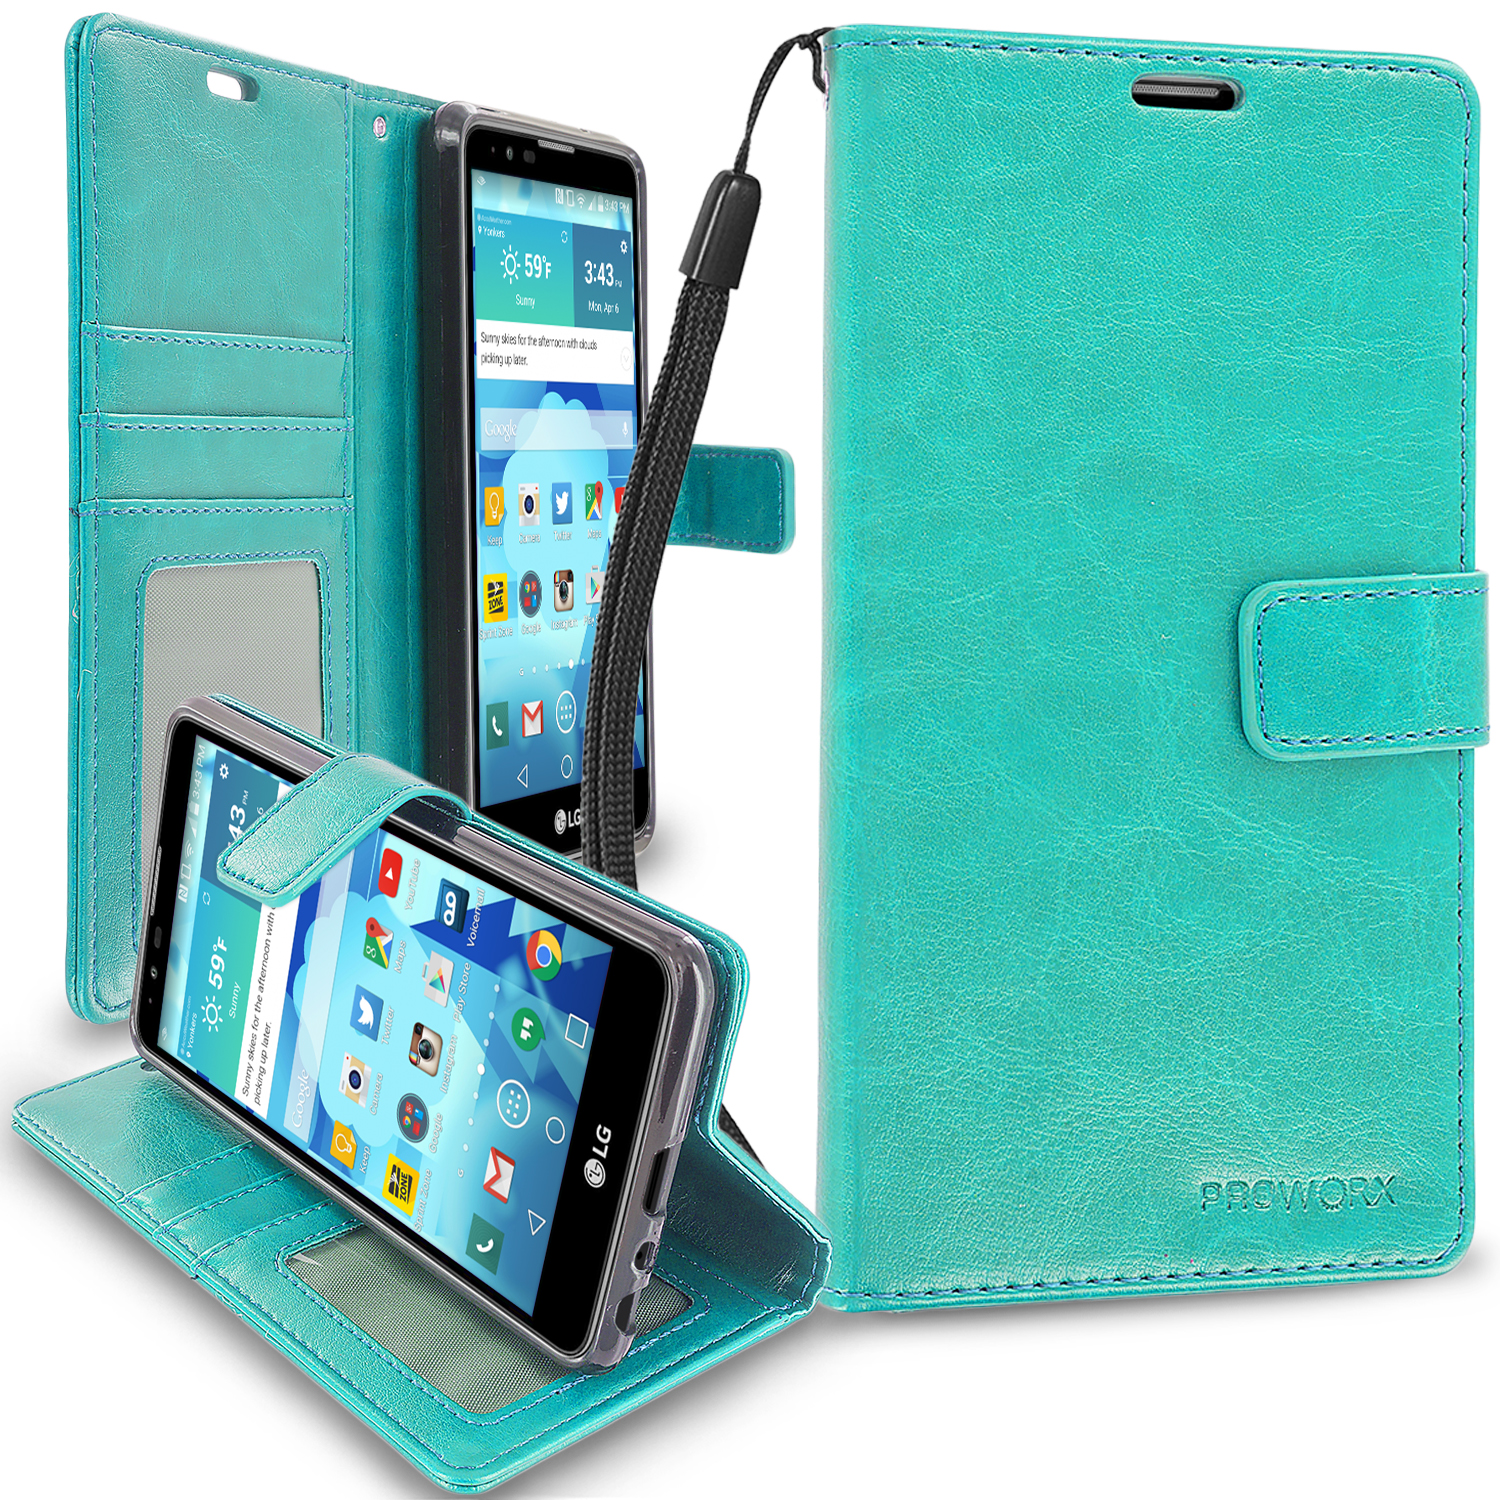 LG G Stylo 2 LS775 / Stylus 2 K520 / Stylo 2 V VS835 Mint Green ProWorx Wallet Case Luxury PU Leather Case Cover With Card Slots & Stand